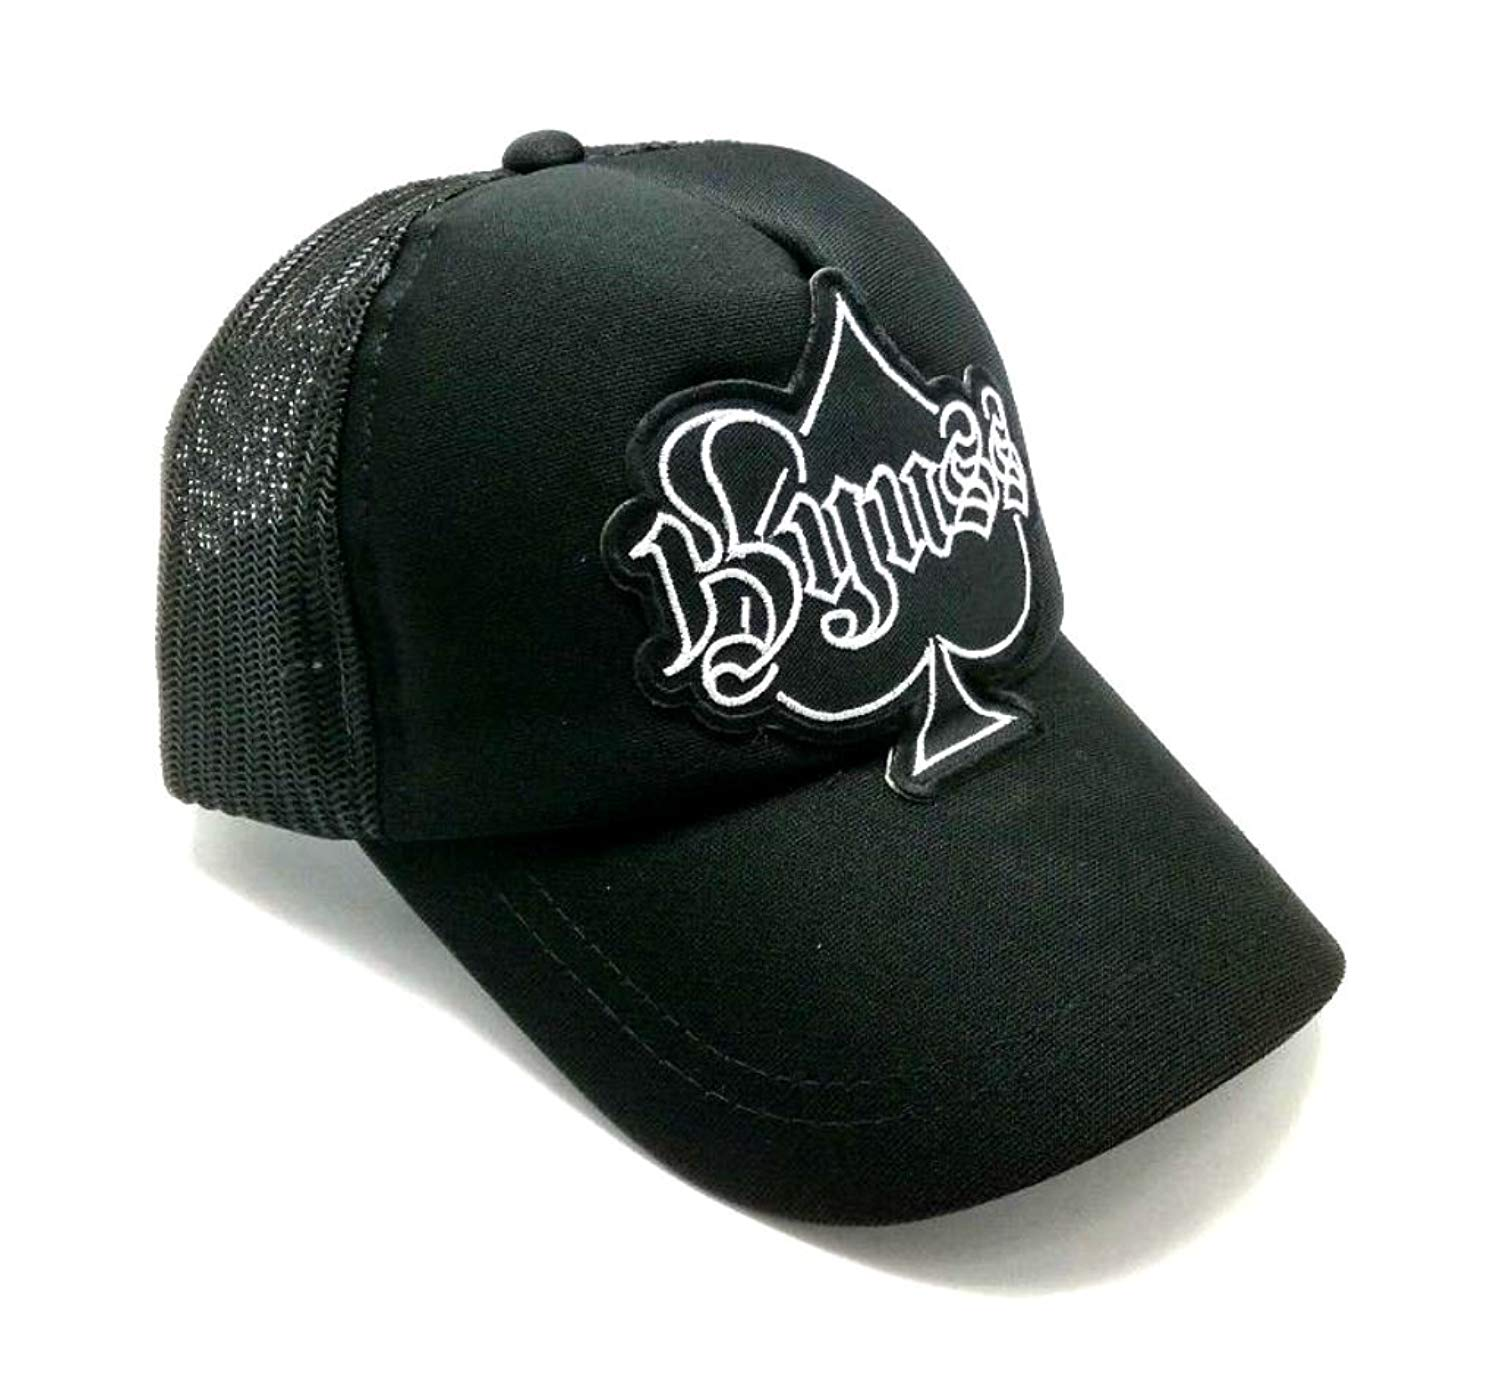 3bc097bc7d9 Get Quotations · Wasuphand Kyuss Metal Rock Punk Indy Skateboard Snapback  Hat Music Heavy Metal Unisex Trucker Hat Classic